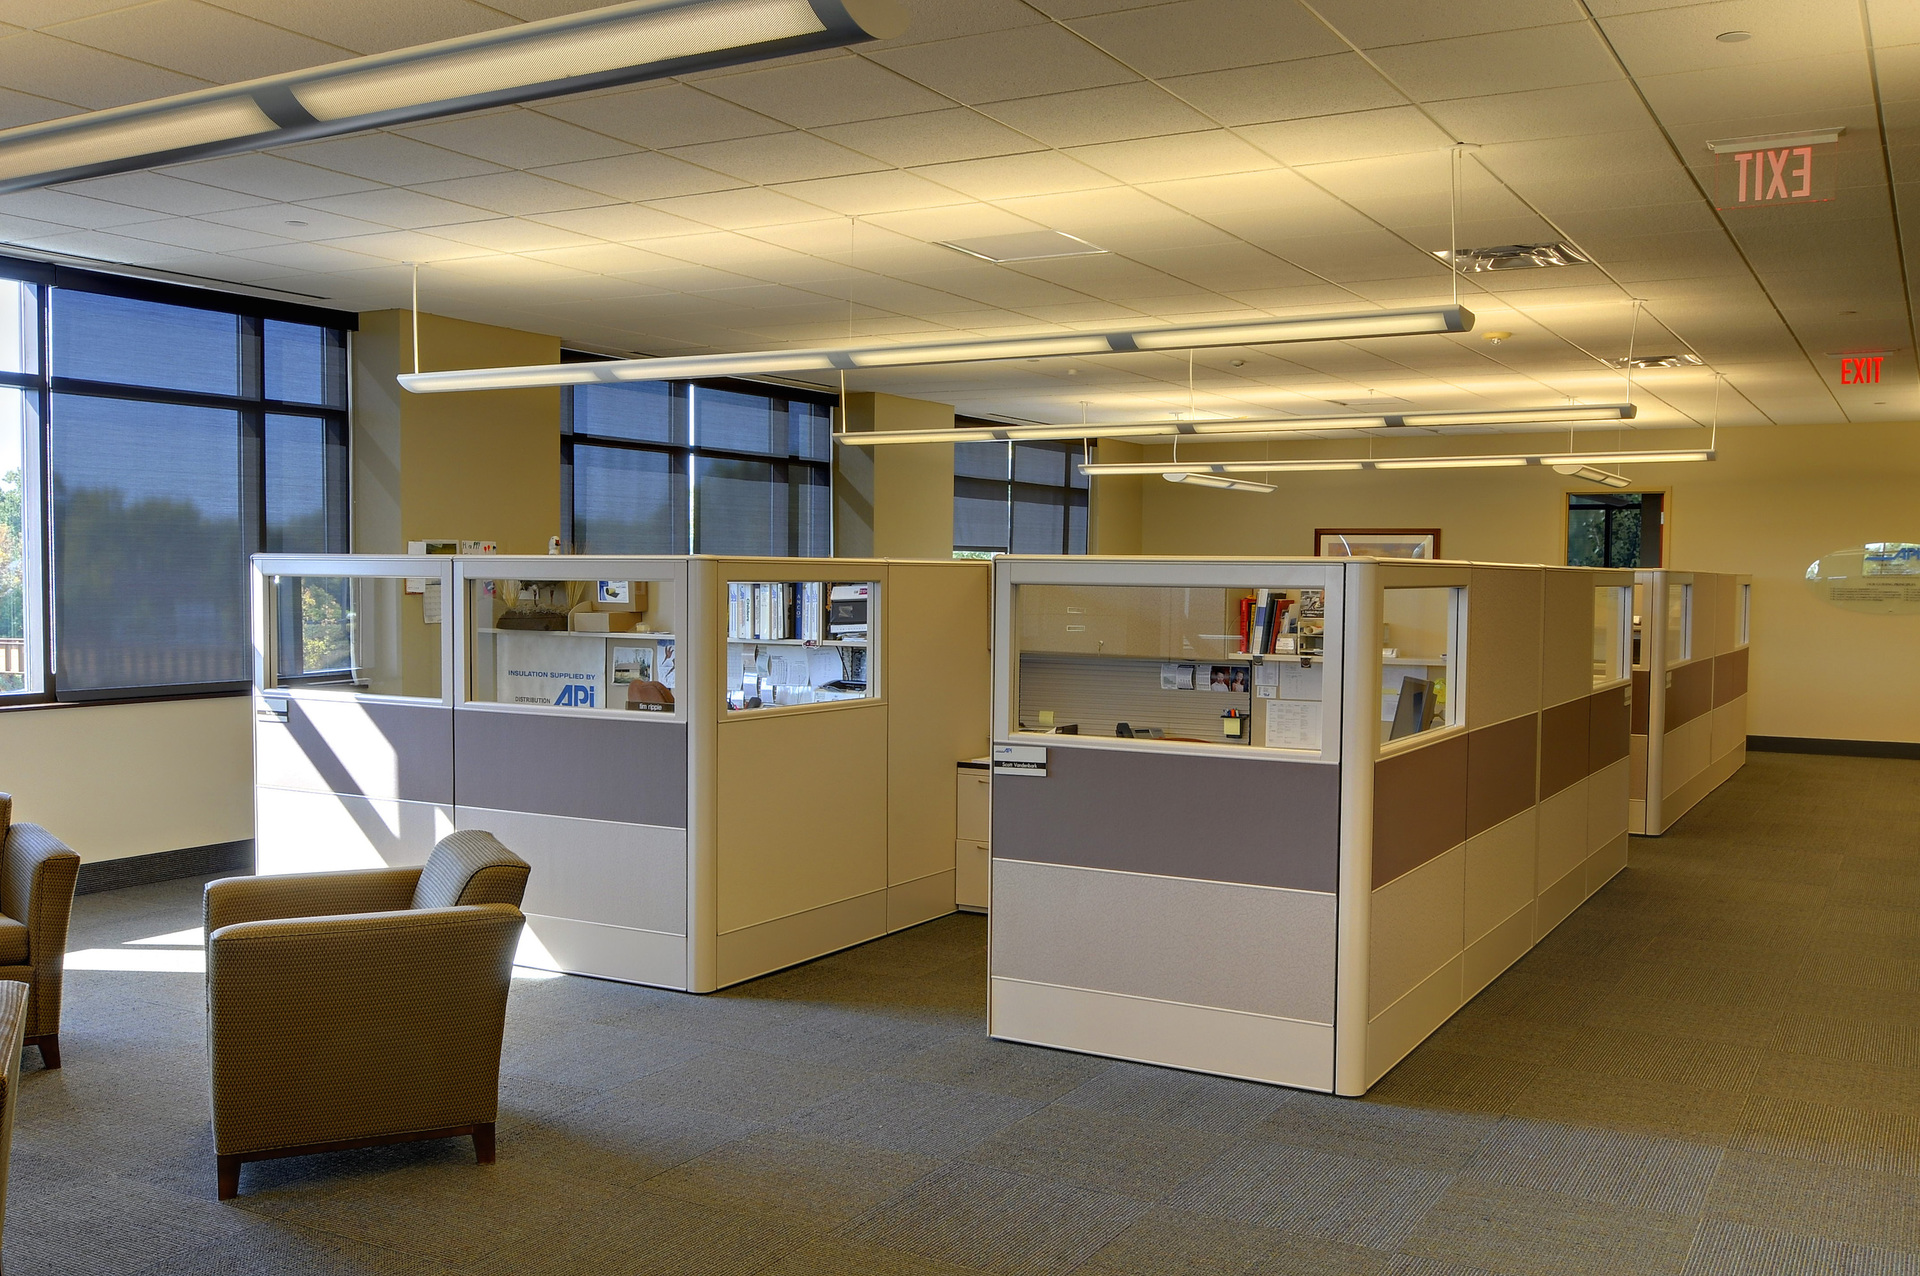 The open office space features linear pendant lights provided by Pulse Products.